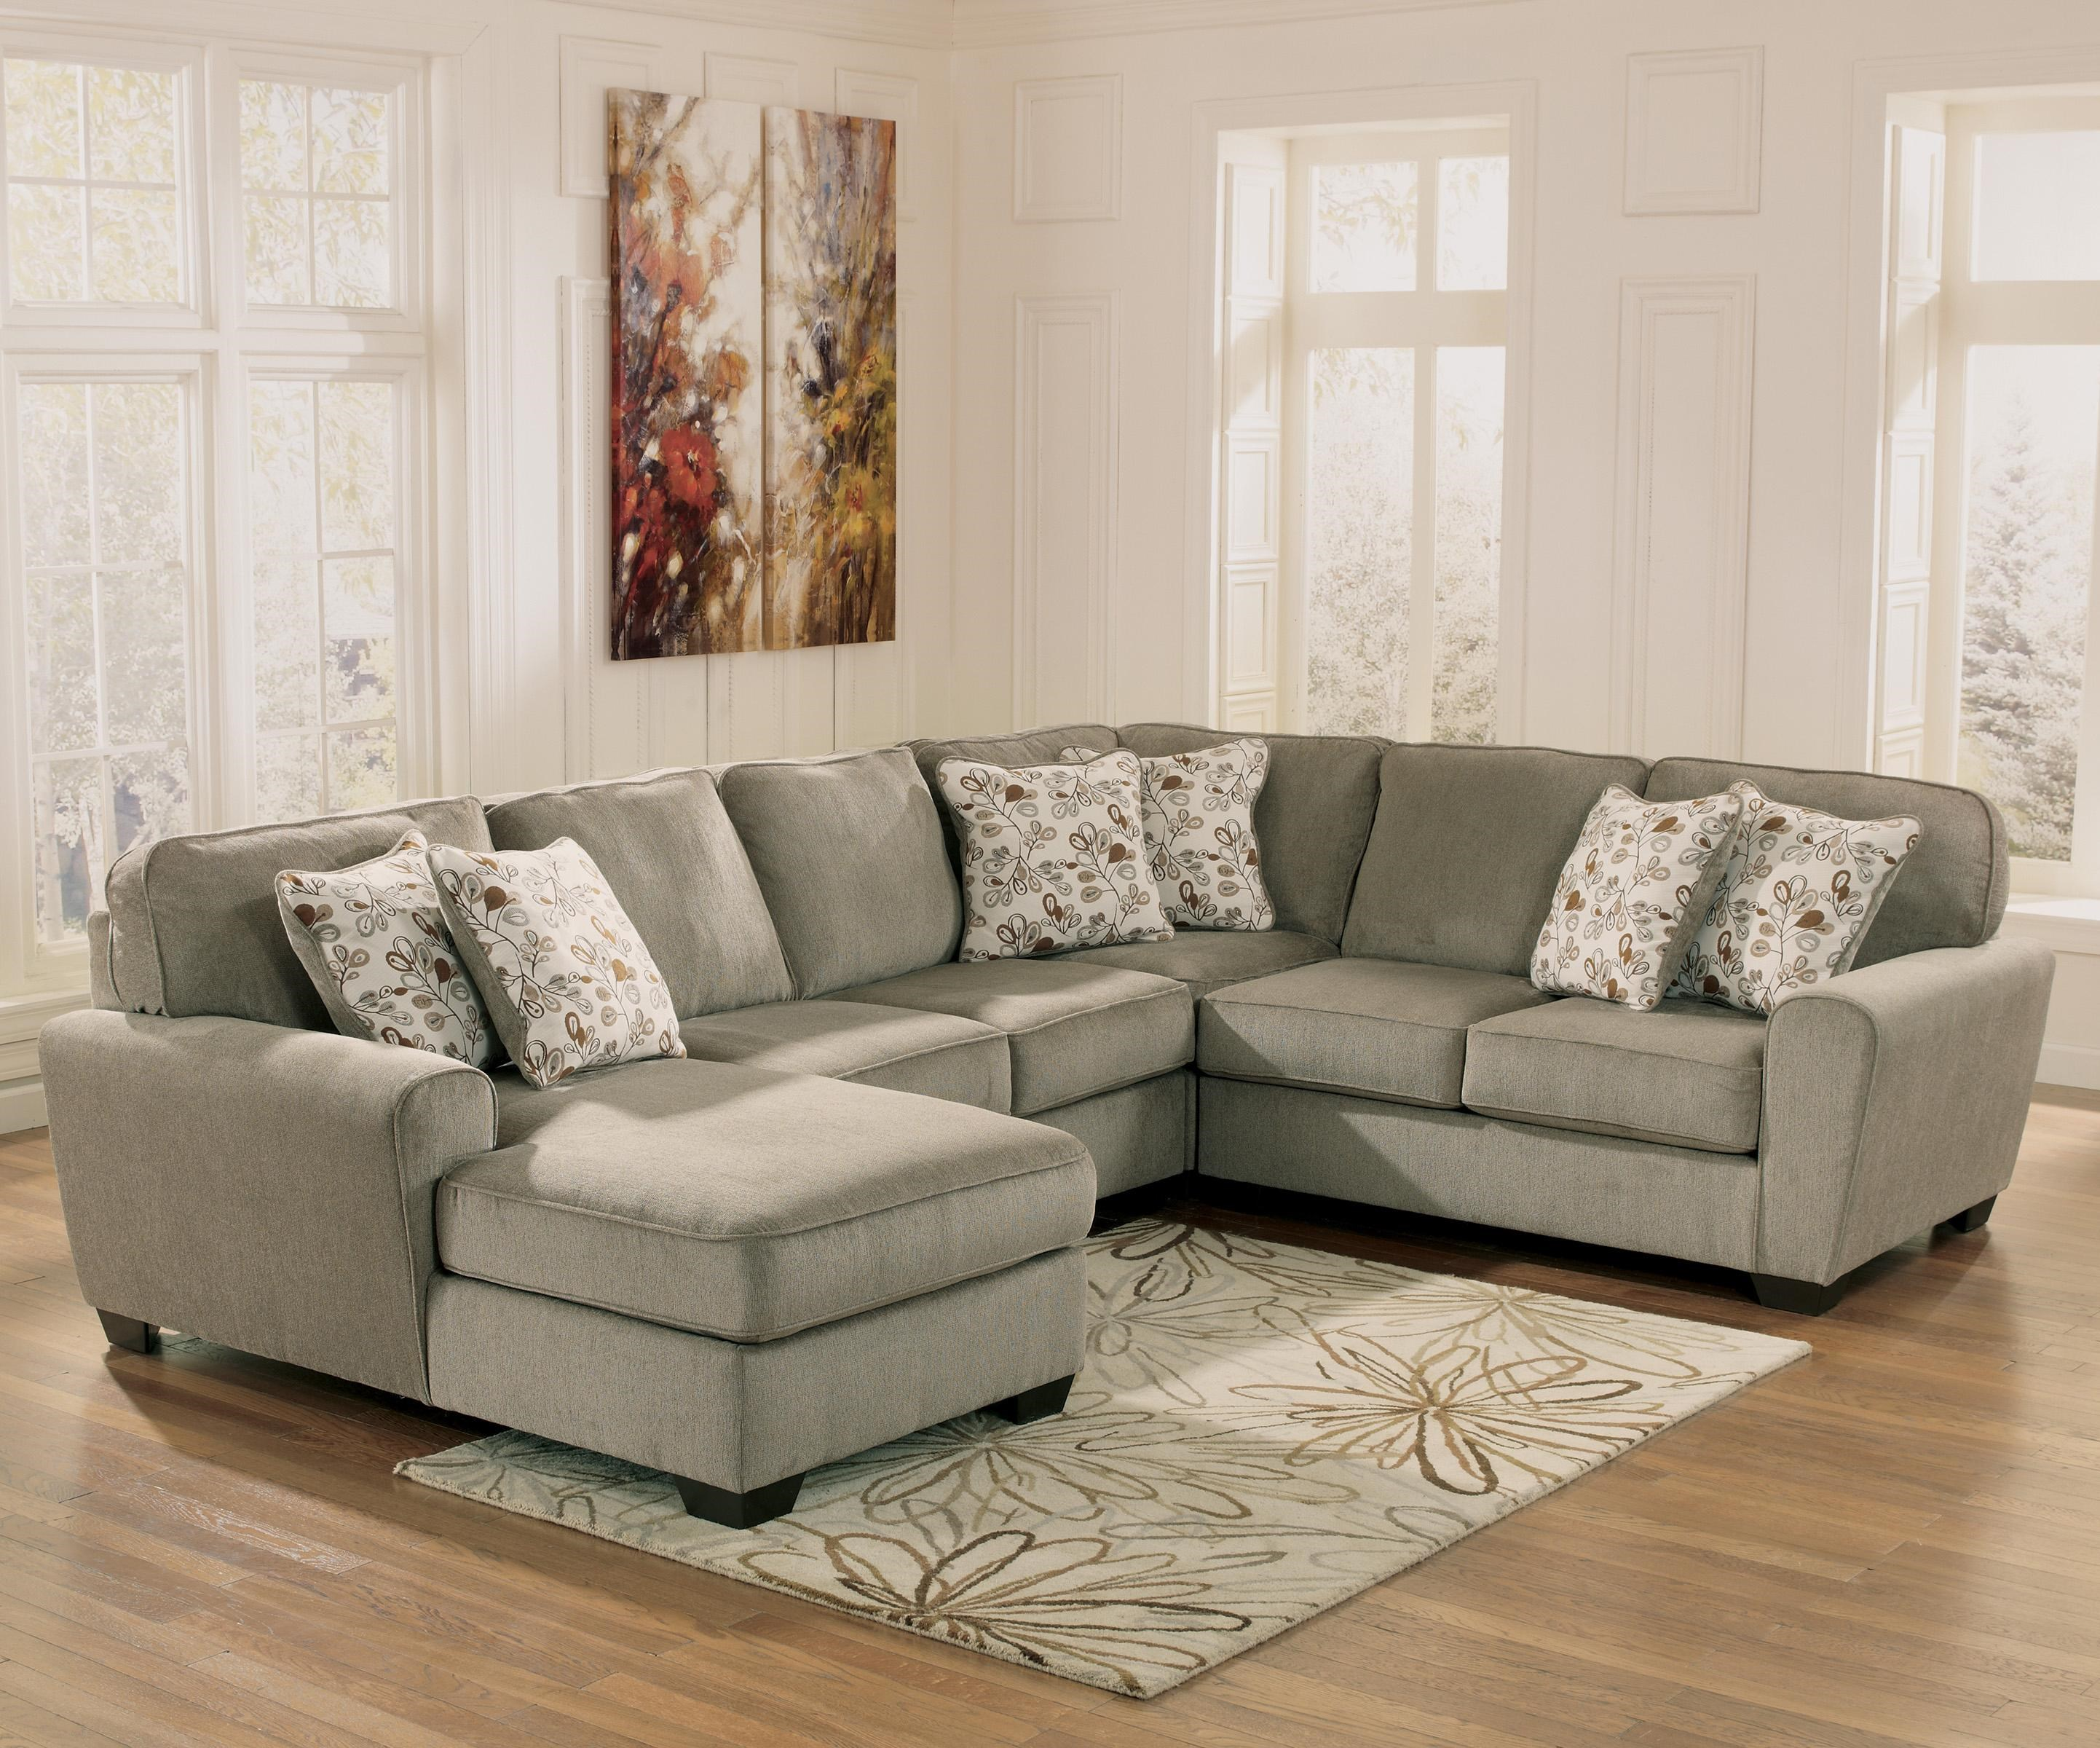 Patina 4 Piece Small Sectional With Left Chaise By Ashley Furniture At  Rotmans